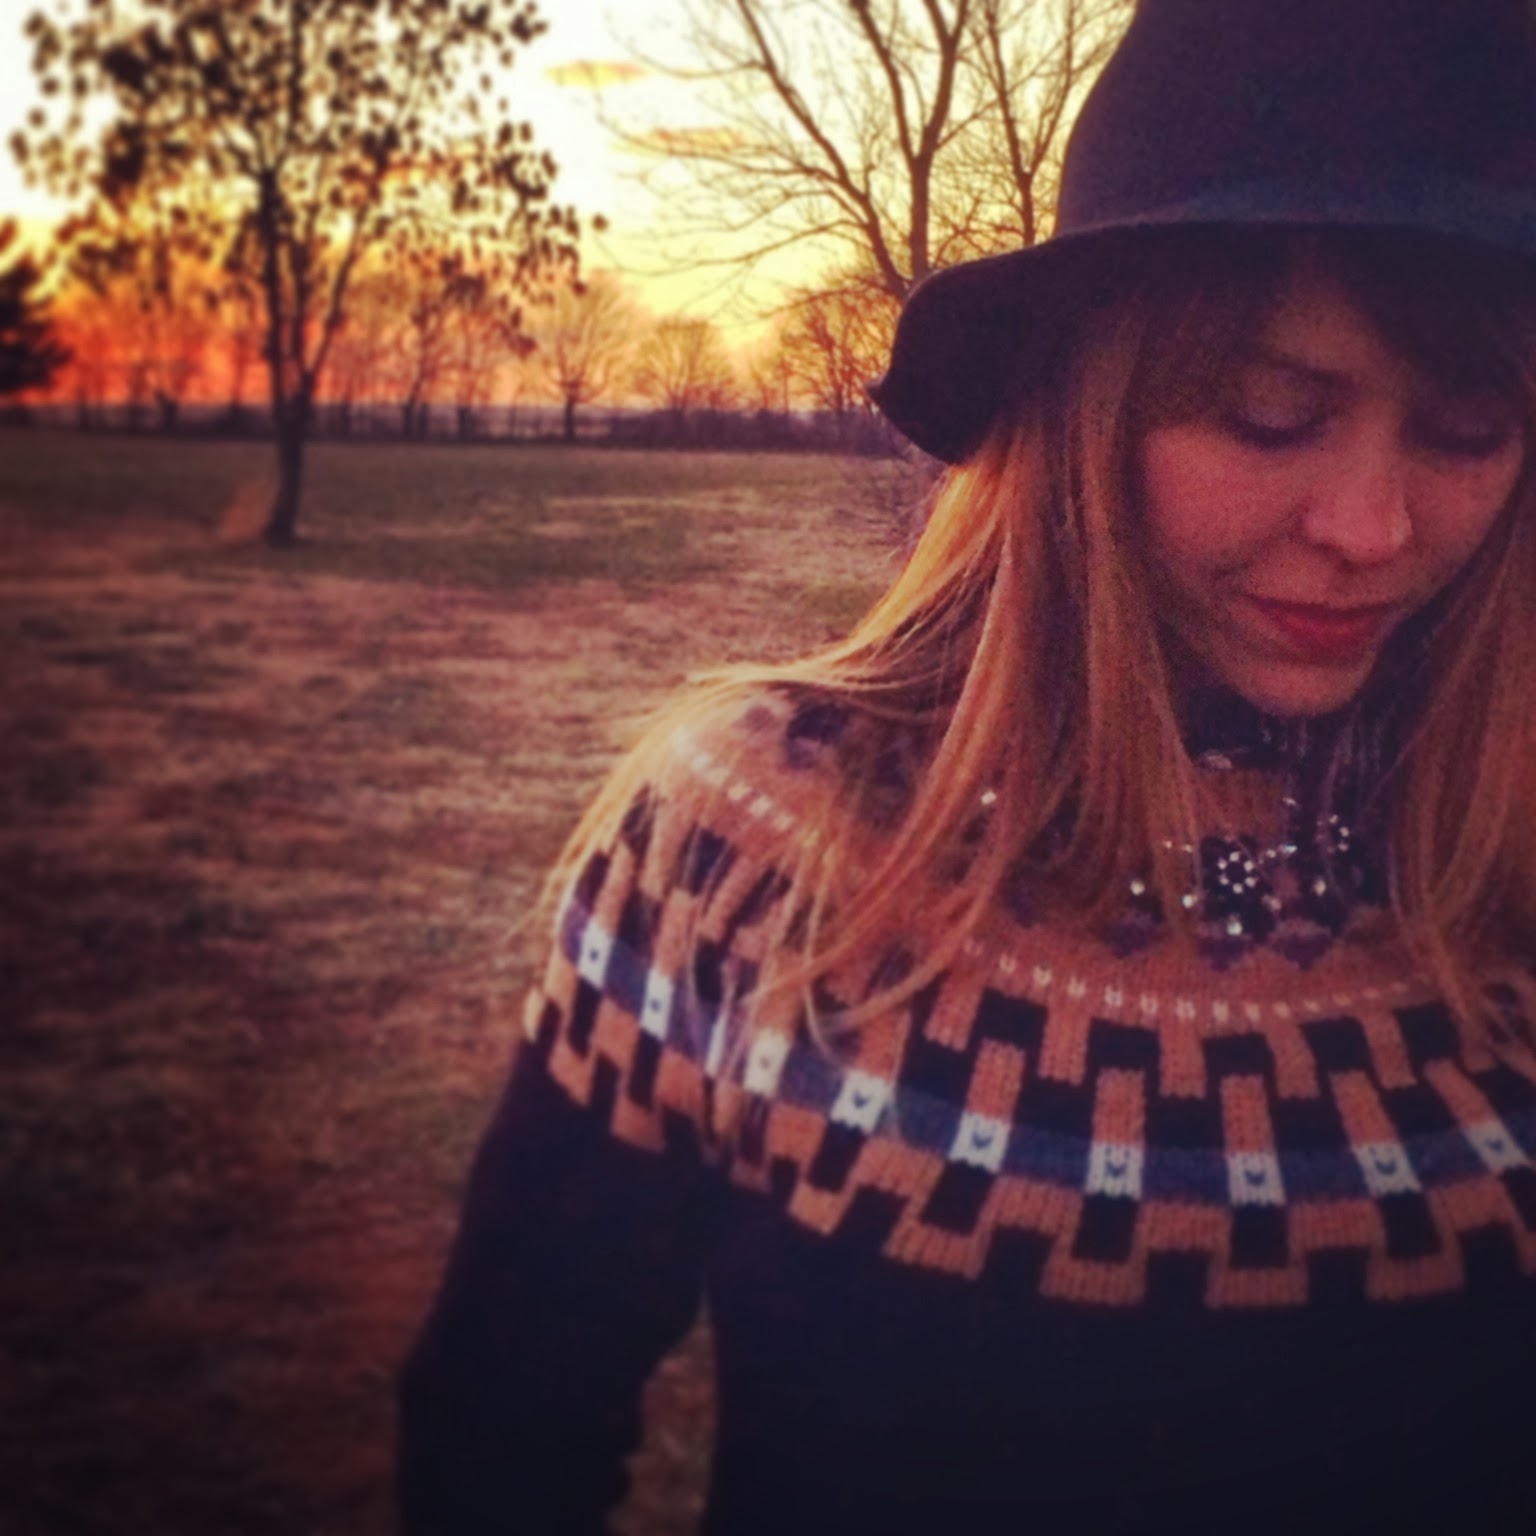 Nebraska, cornfield, Madewell, Topshop, Plaid, Denim, Fashion, Casual, Roots, Sunset, Winter